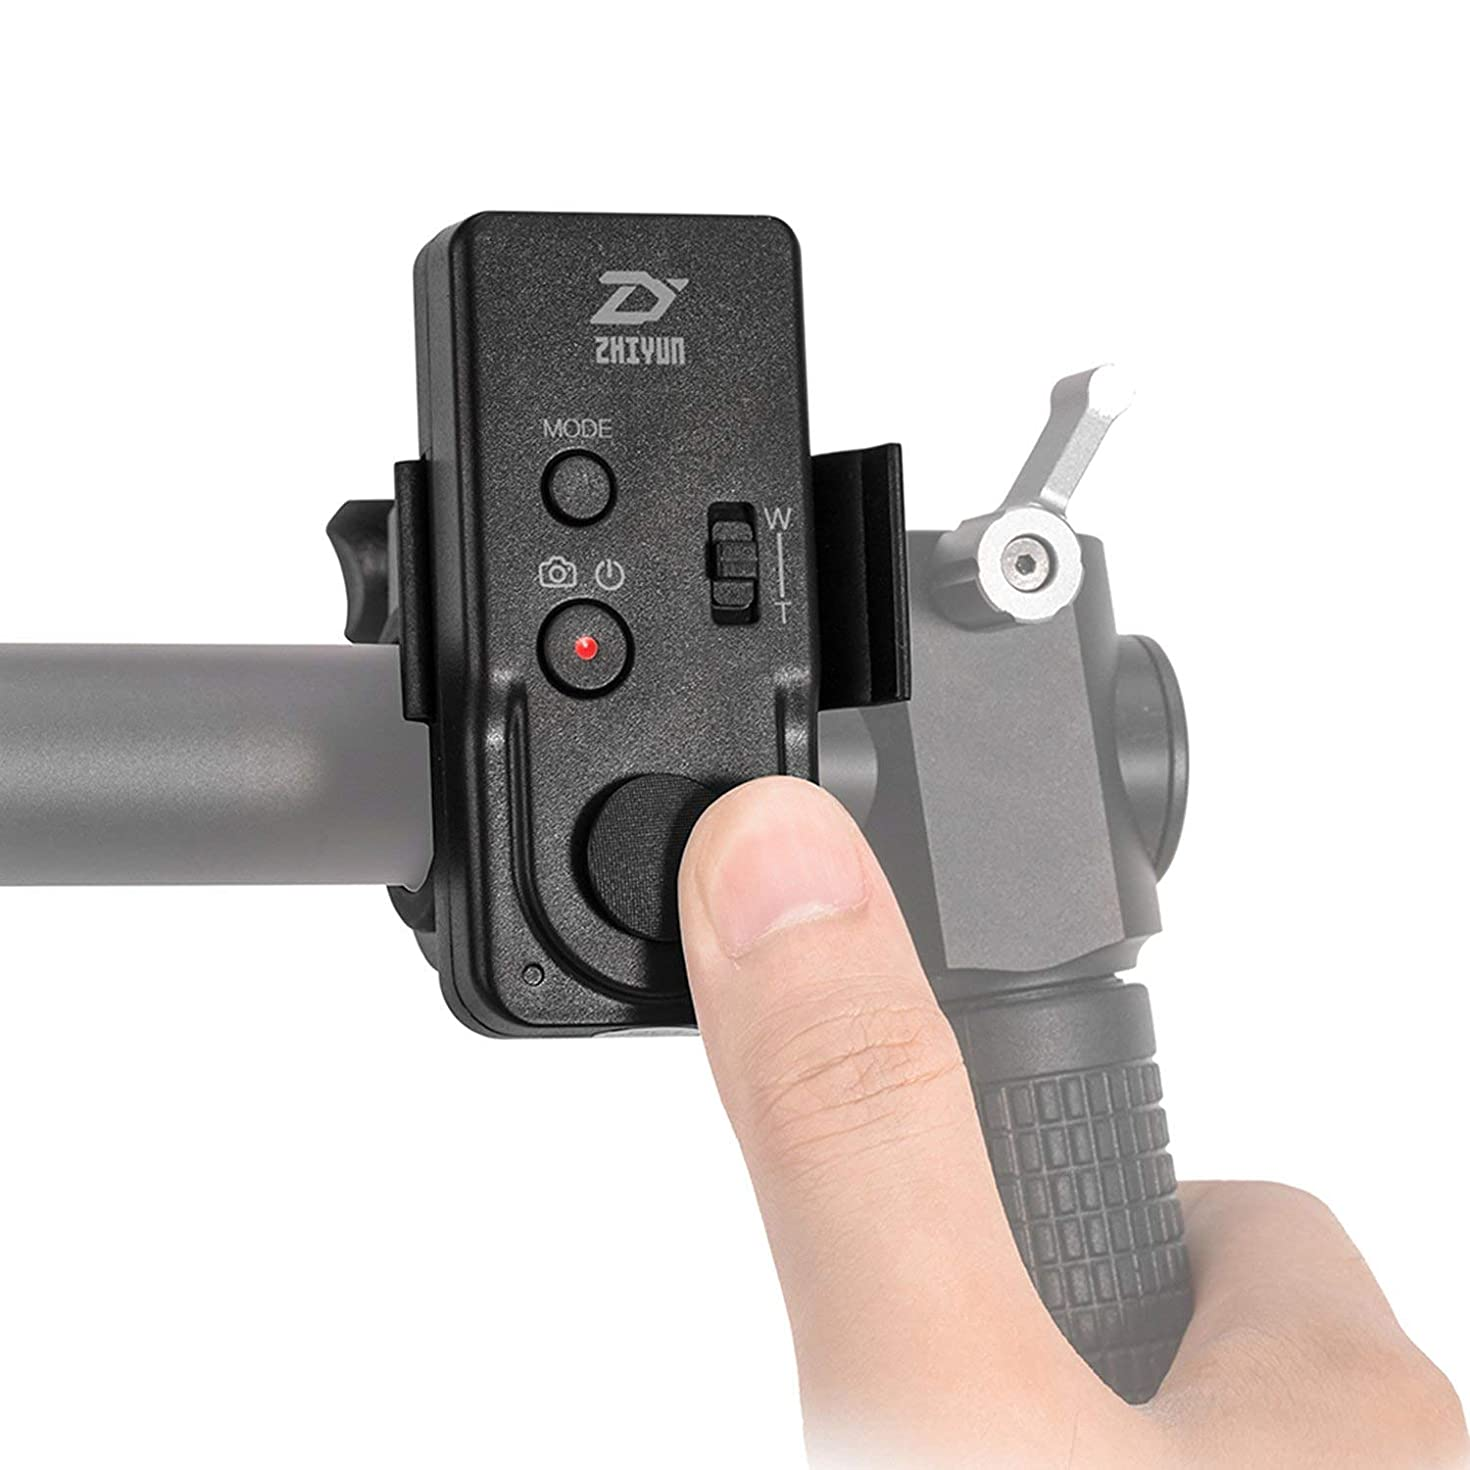 Zhiyun ZW-B02 Wireless Thumb Controller for Zhiyun Crane Crane 2 Crane M Crane Plus Crane V2 Smooth-II Smooth 3 Smooth 4 Smooth-Q Rider-M Gimbal Stabilizer